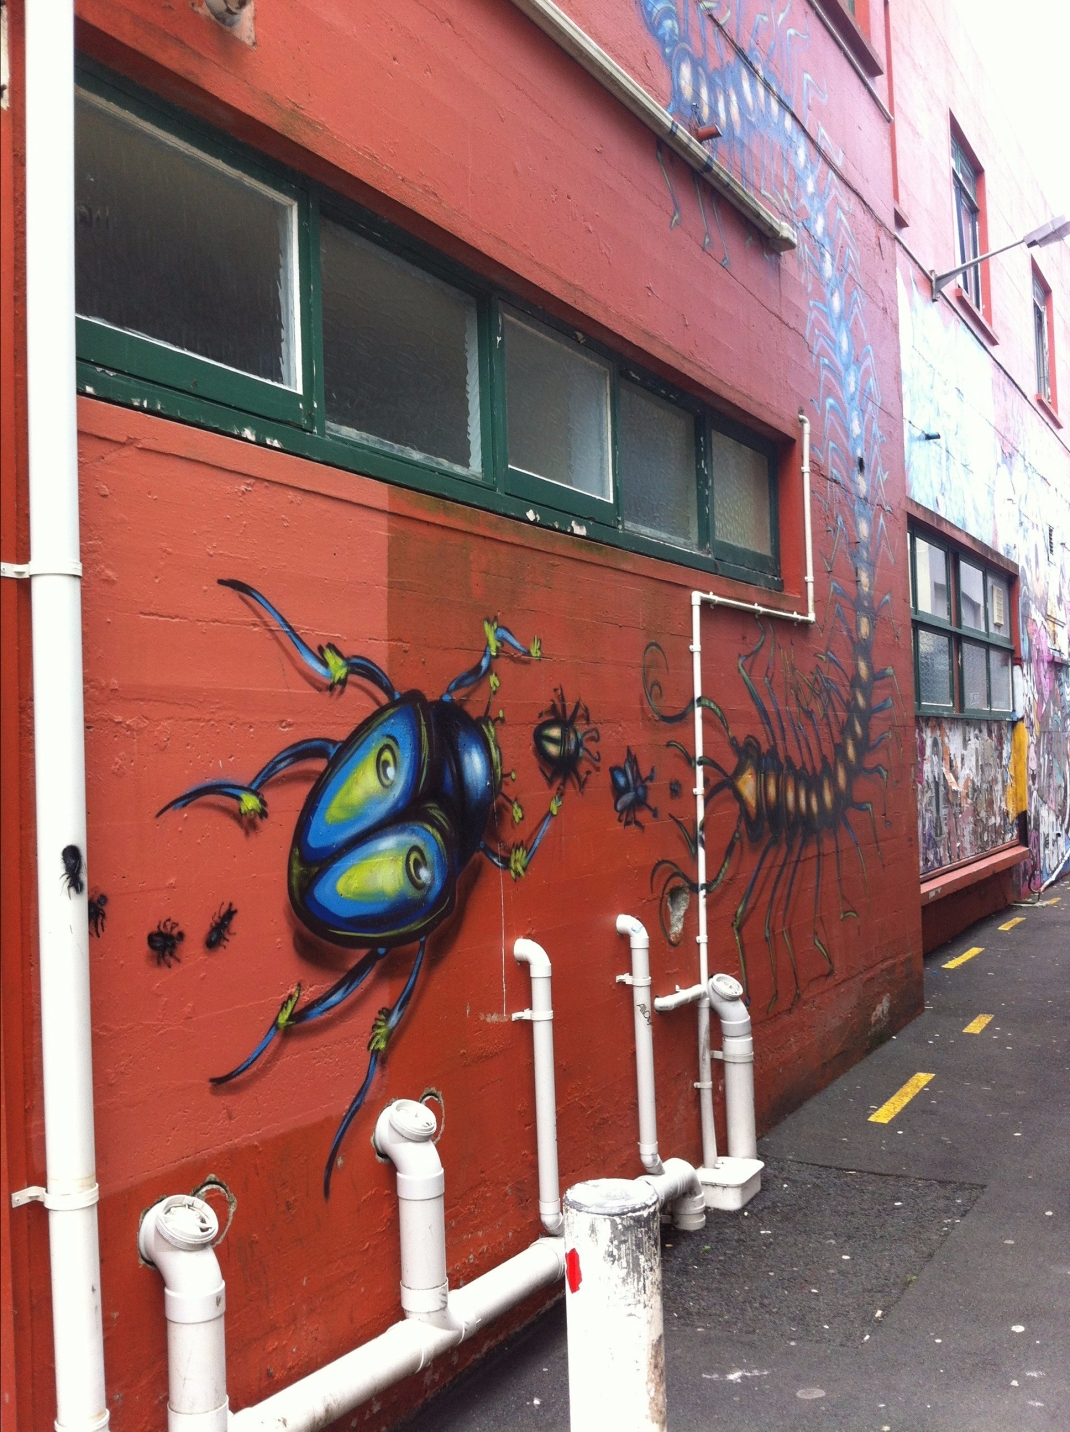 New Plymouth mural - artist unknown